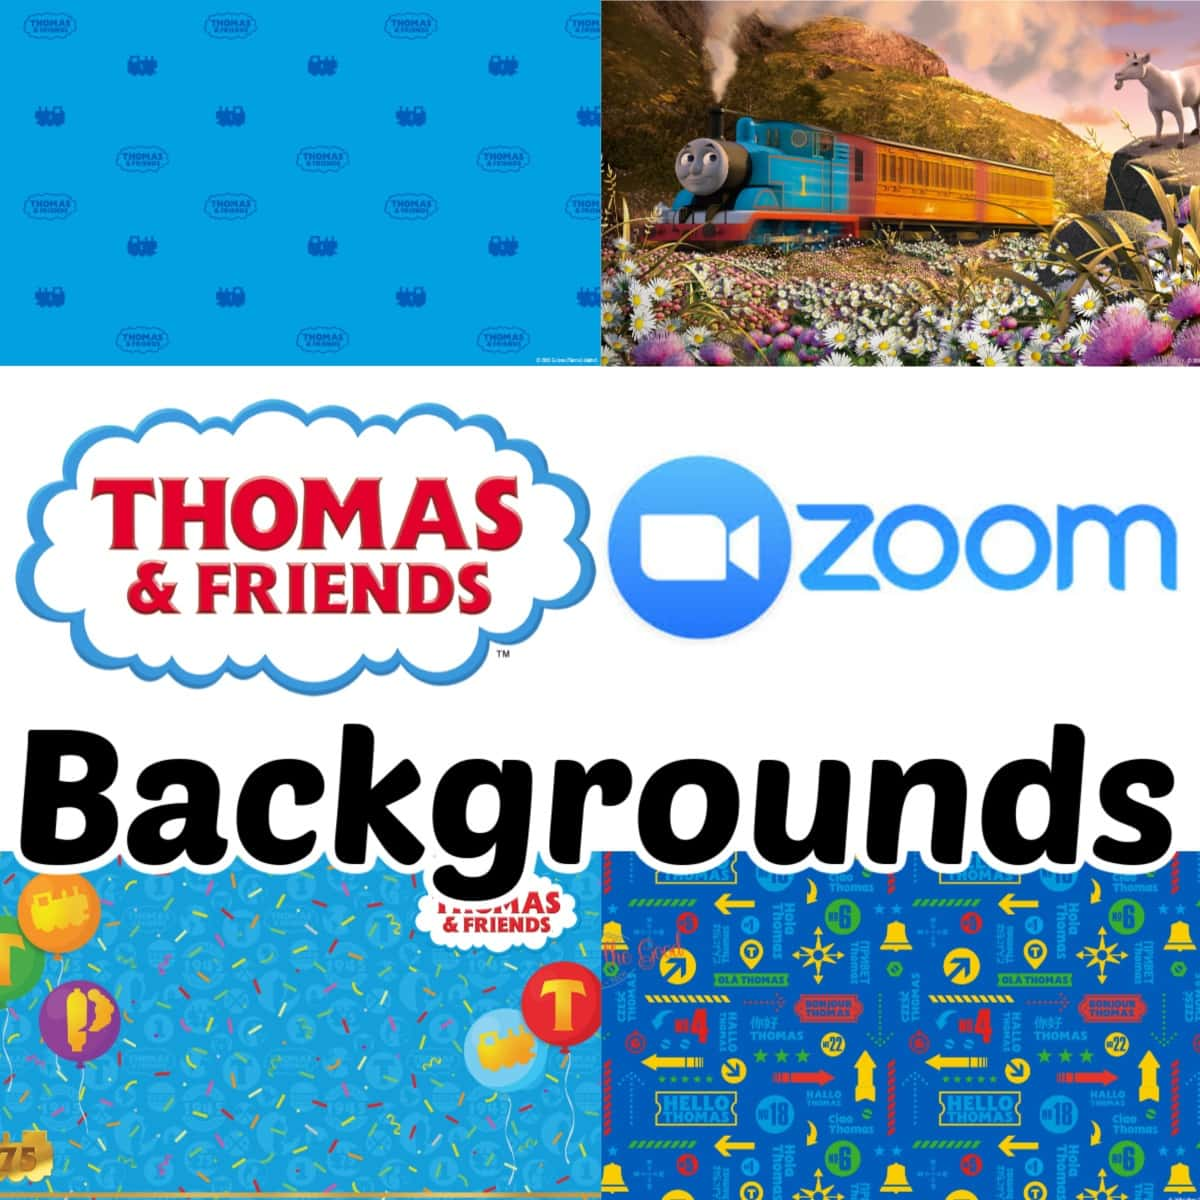 Thomas and Friends Wallpaper Backgrounds graphic